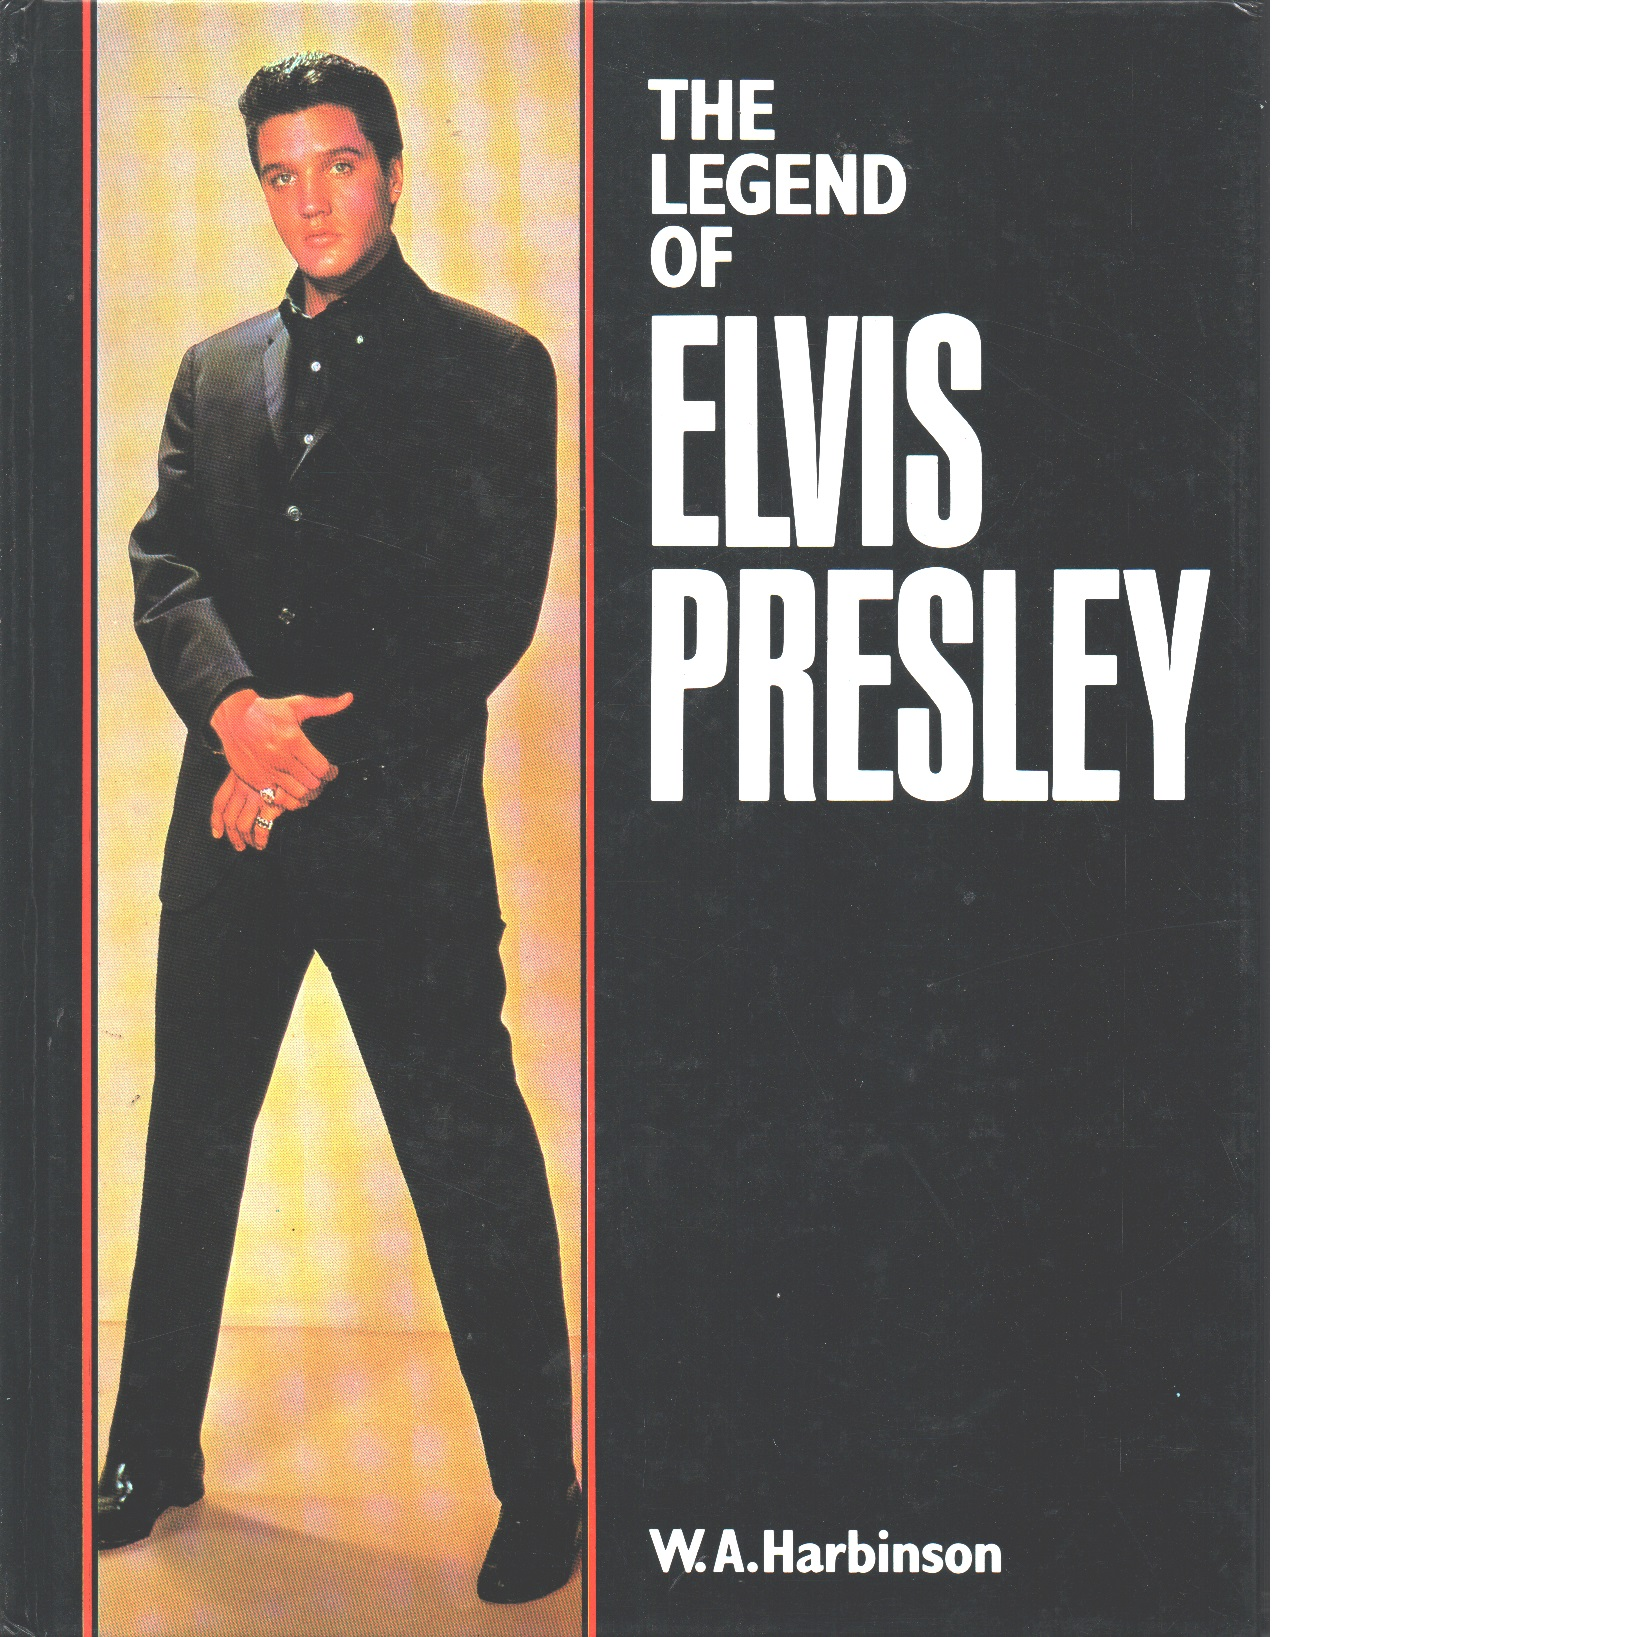 The Legend of Elvis Presley - Harbinson, W.A.